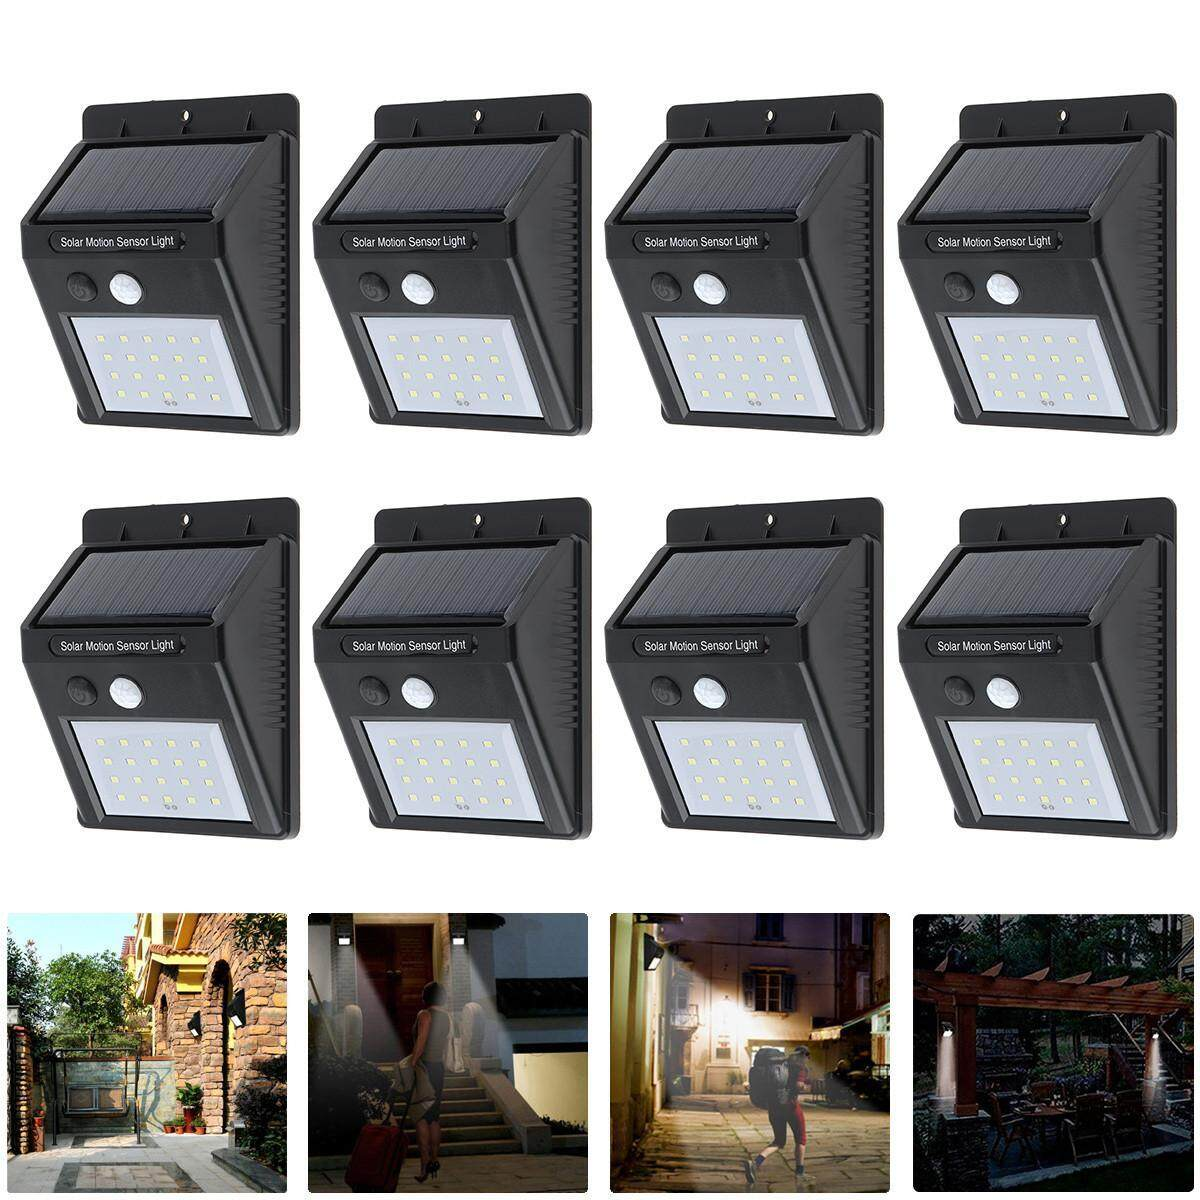 8Pcs LED Solar Power PIR Motion Sensor Wall Light 20 LED Outdoor Waterproof Energy Saving Street Yard Path Home Garden Security Lamp